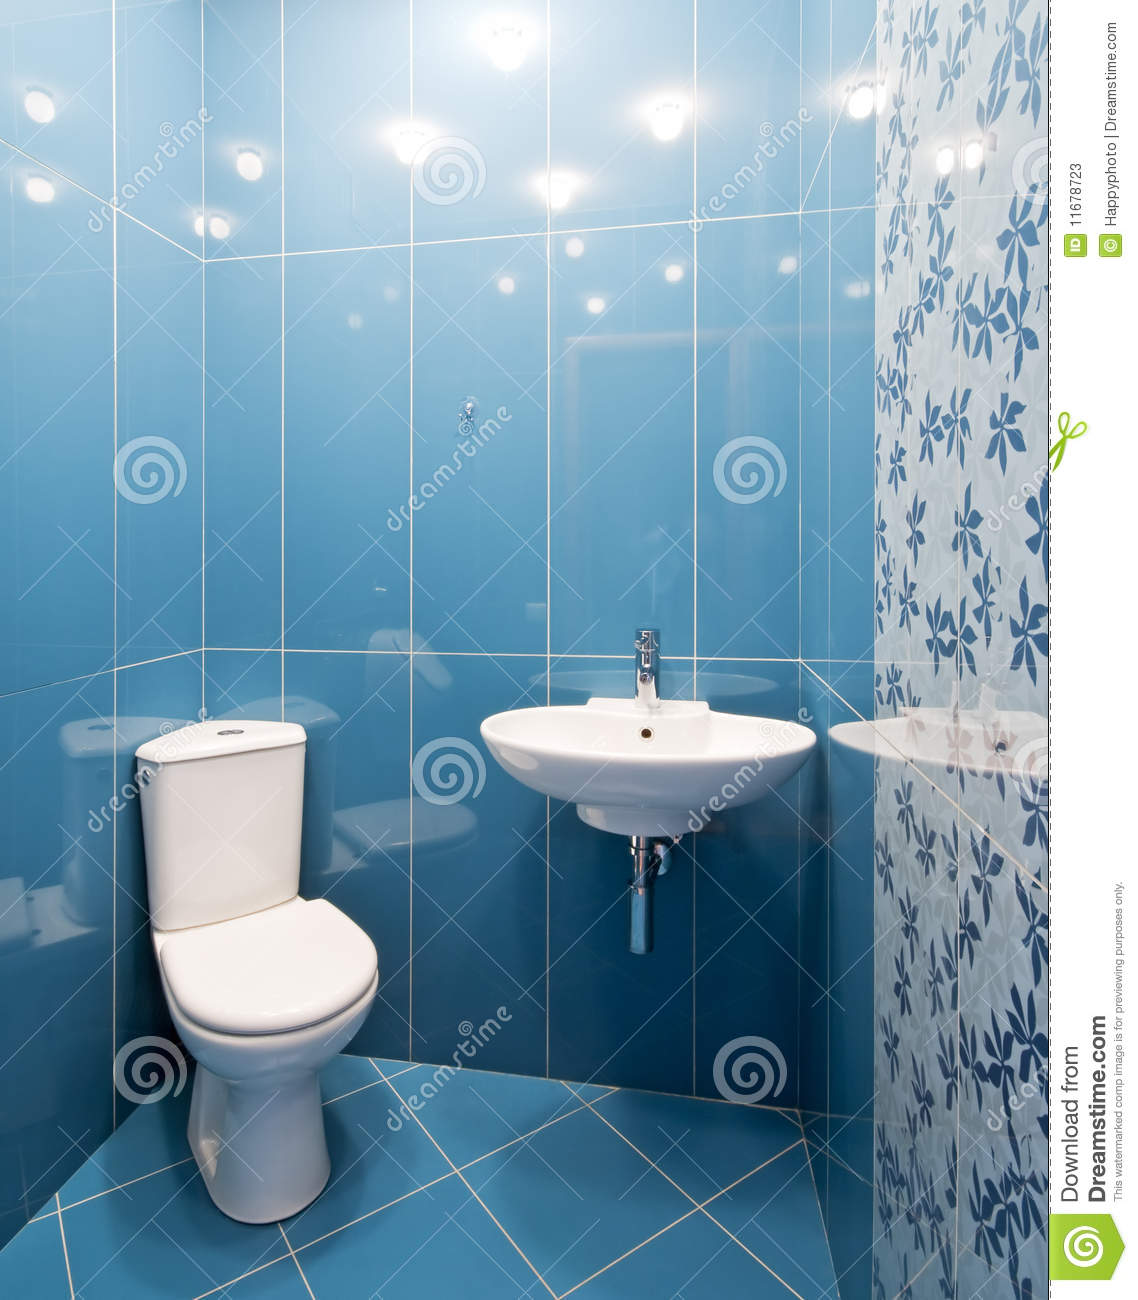 Toilet Room In Blue Colors Stock Image Image Of Tiled